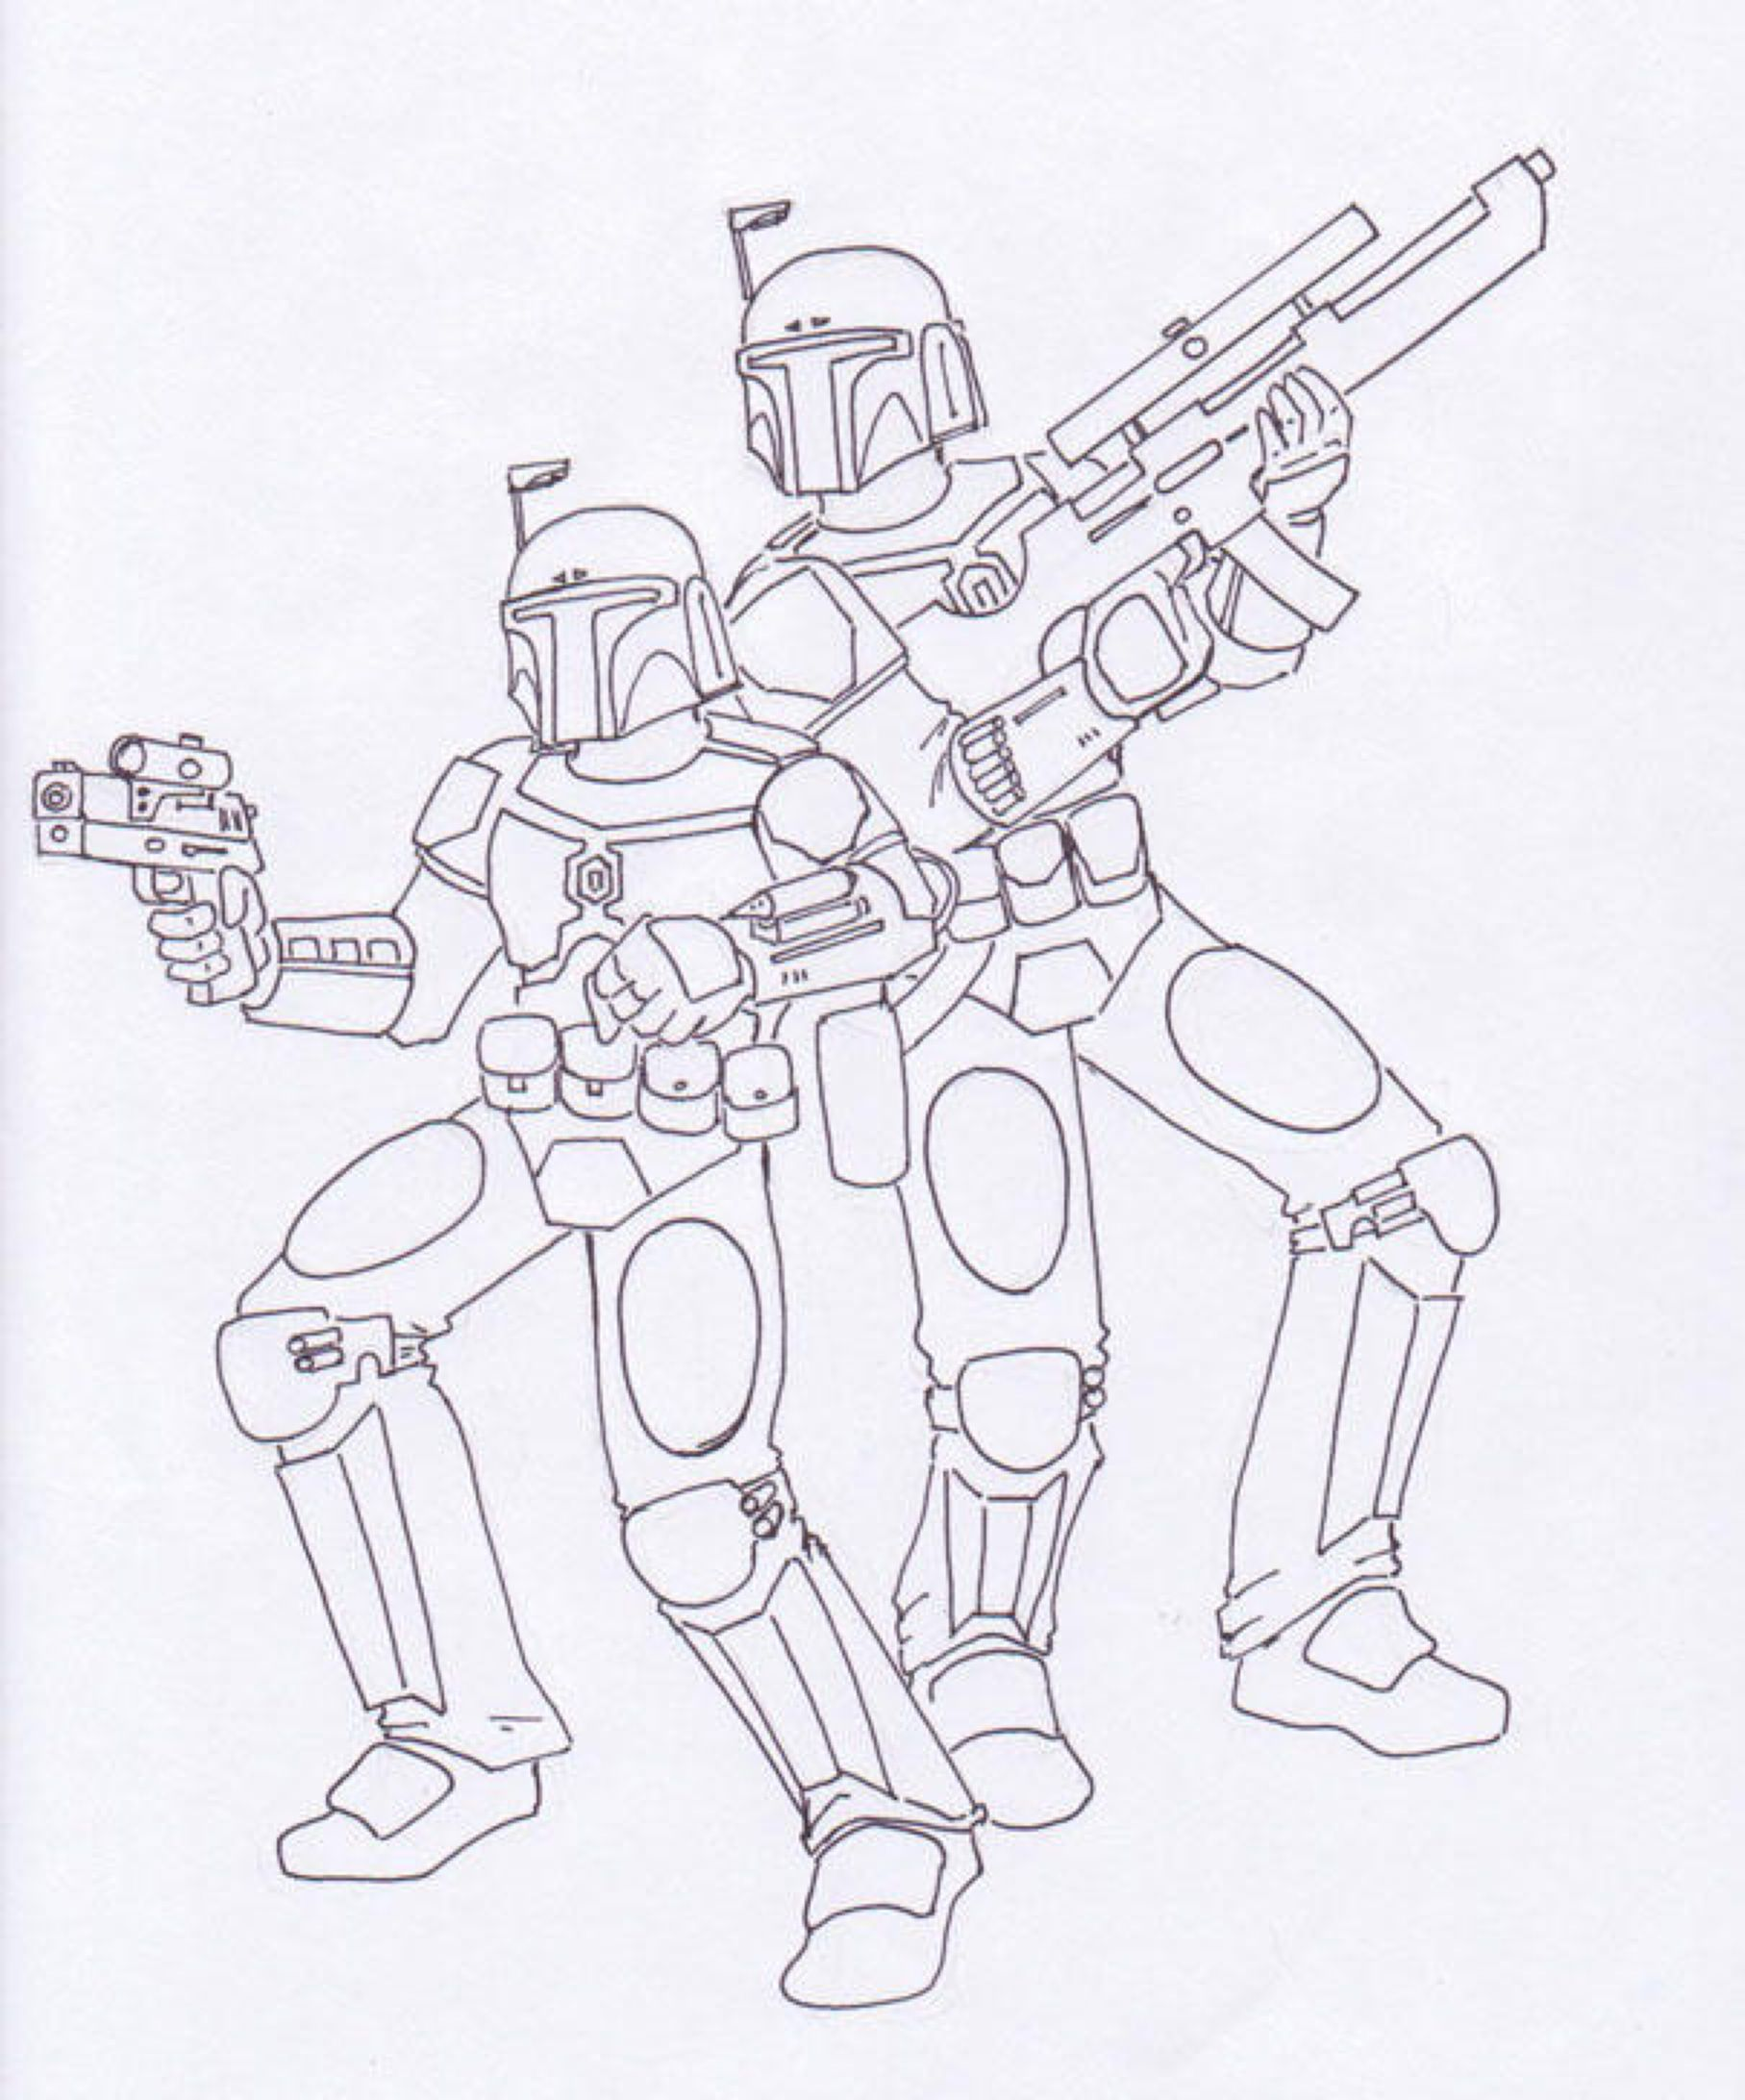 mandalorian brotherscommander13 on @deviantart